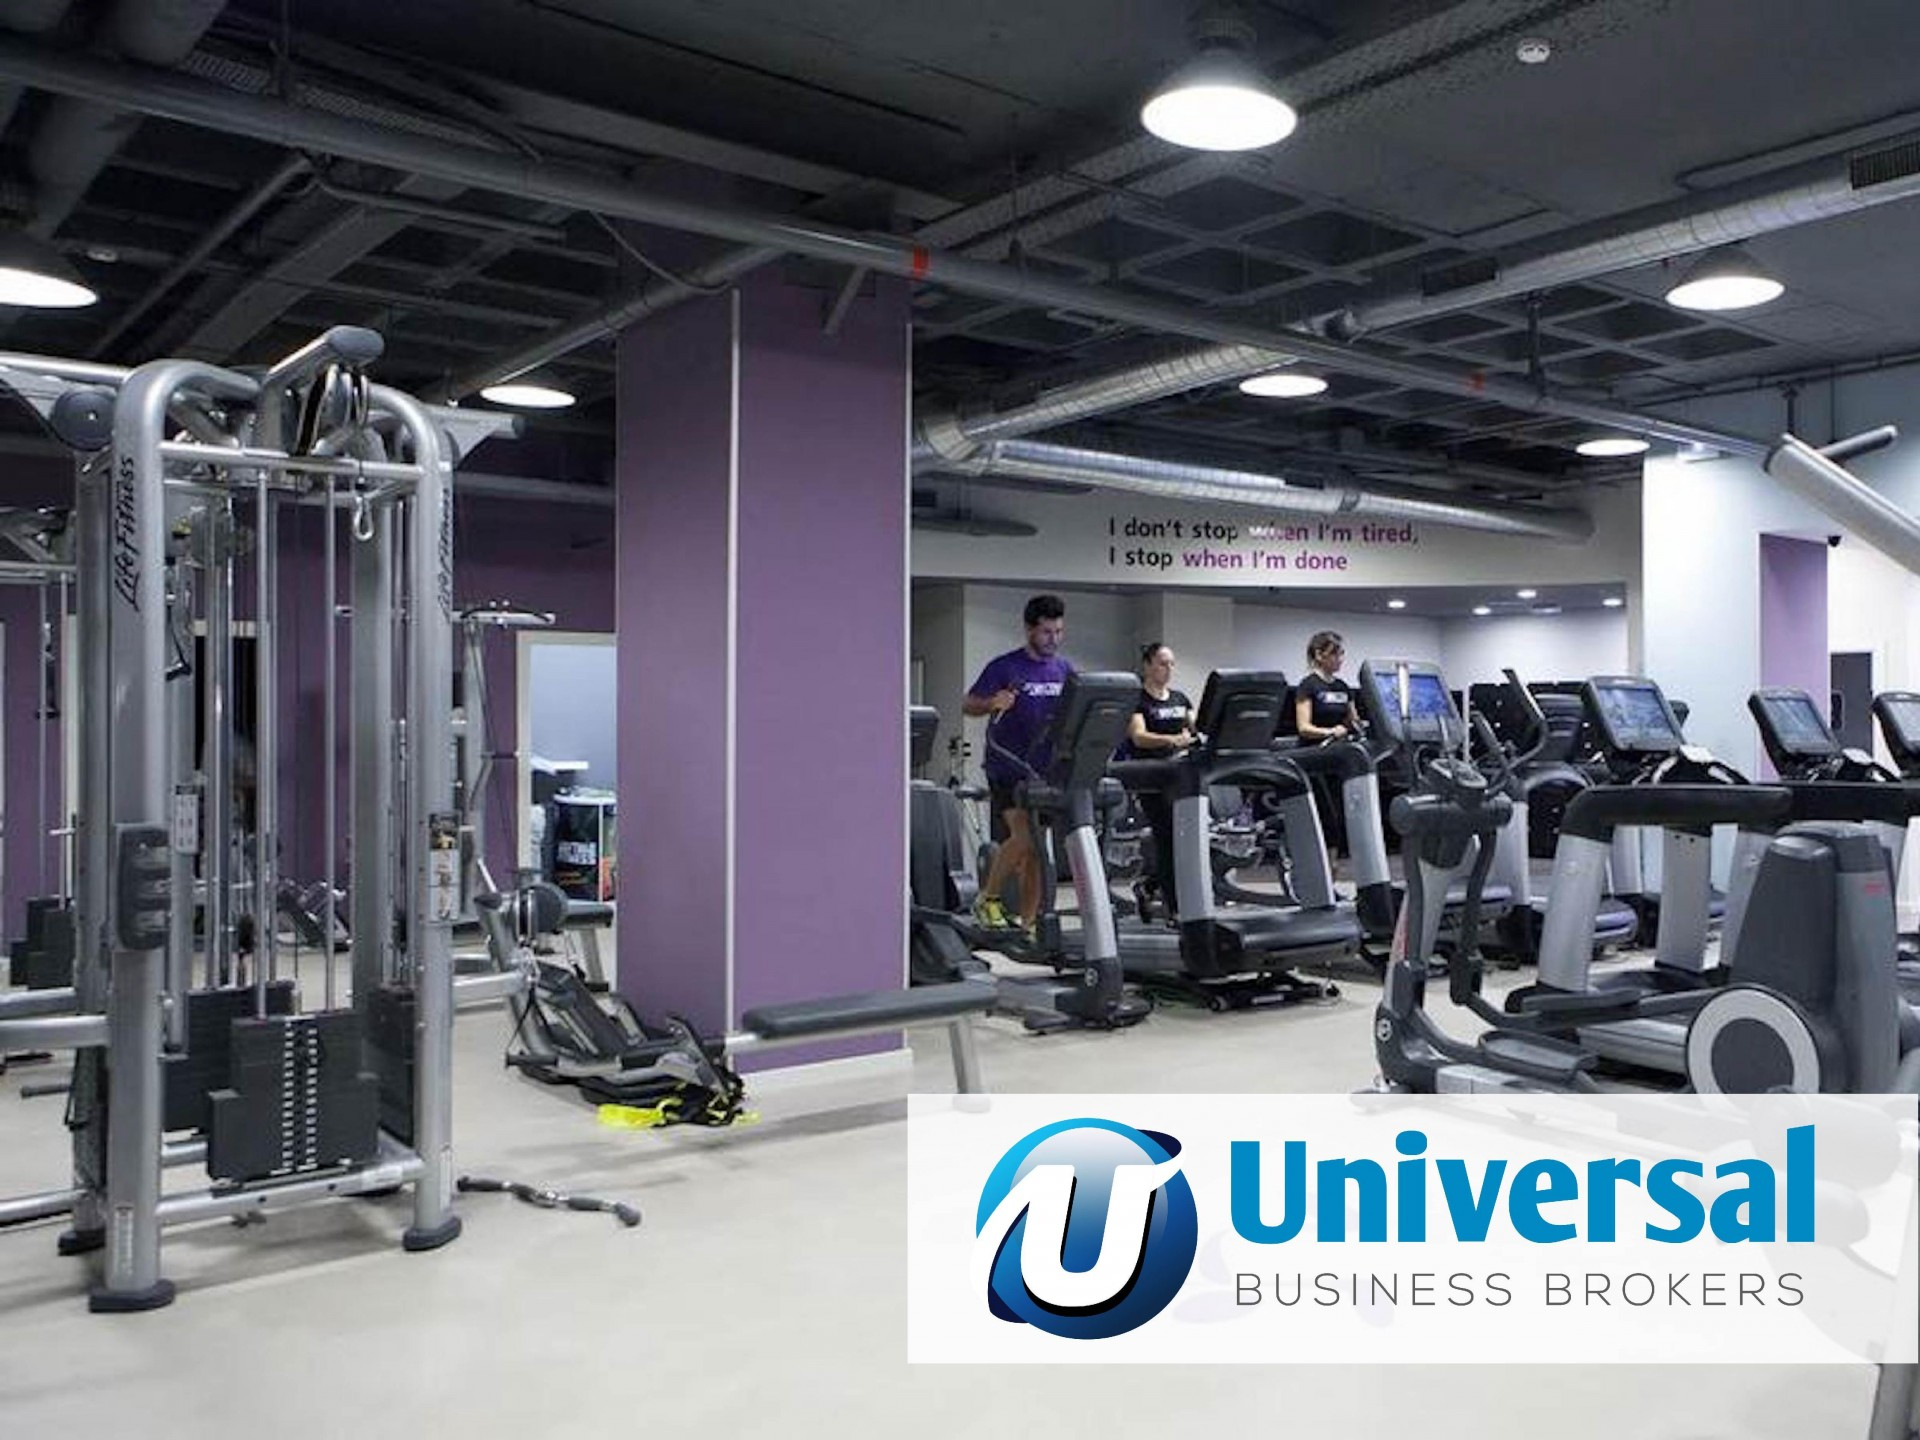 Anytime Fitness Gym Franchise for Sale Kempsey NSW